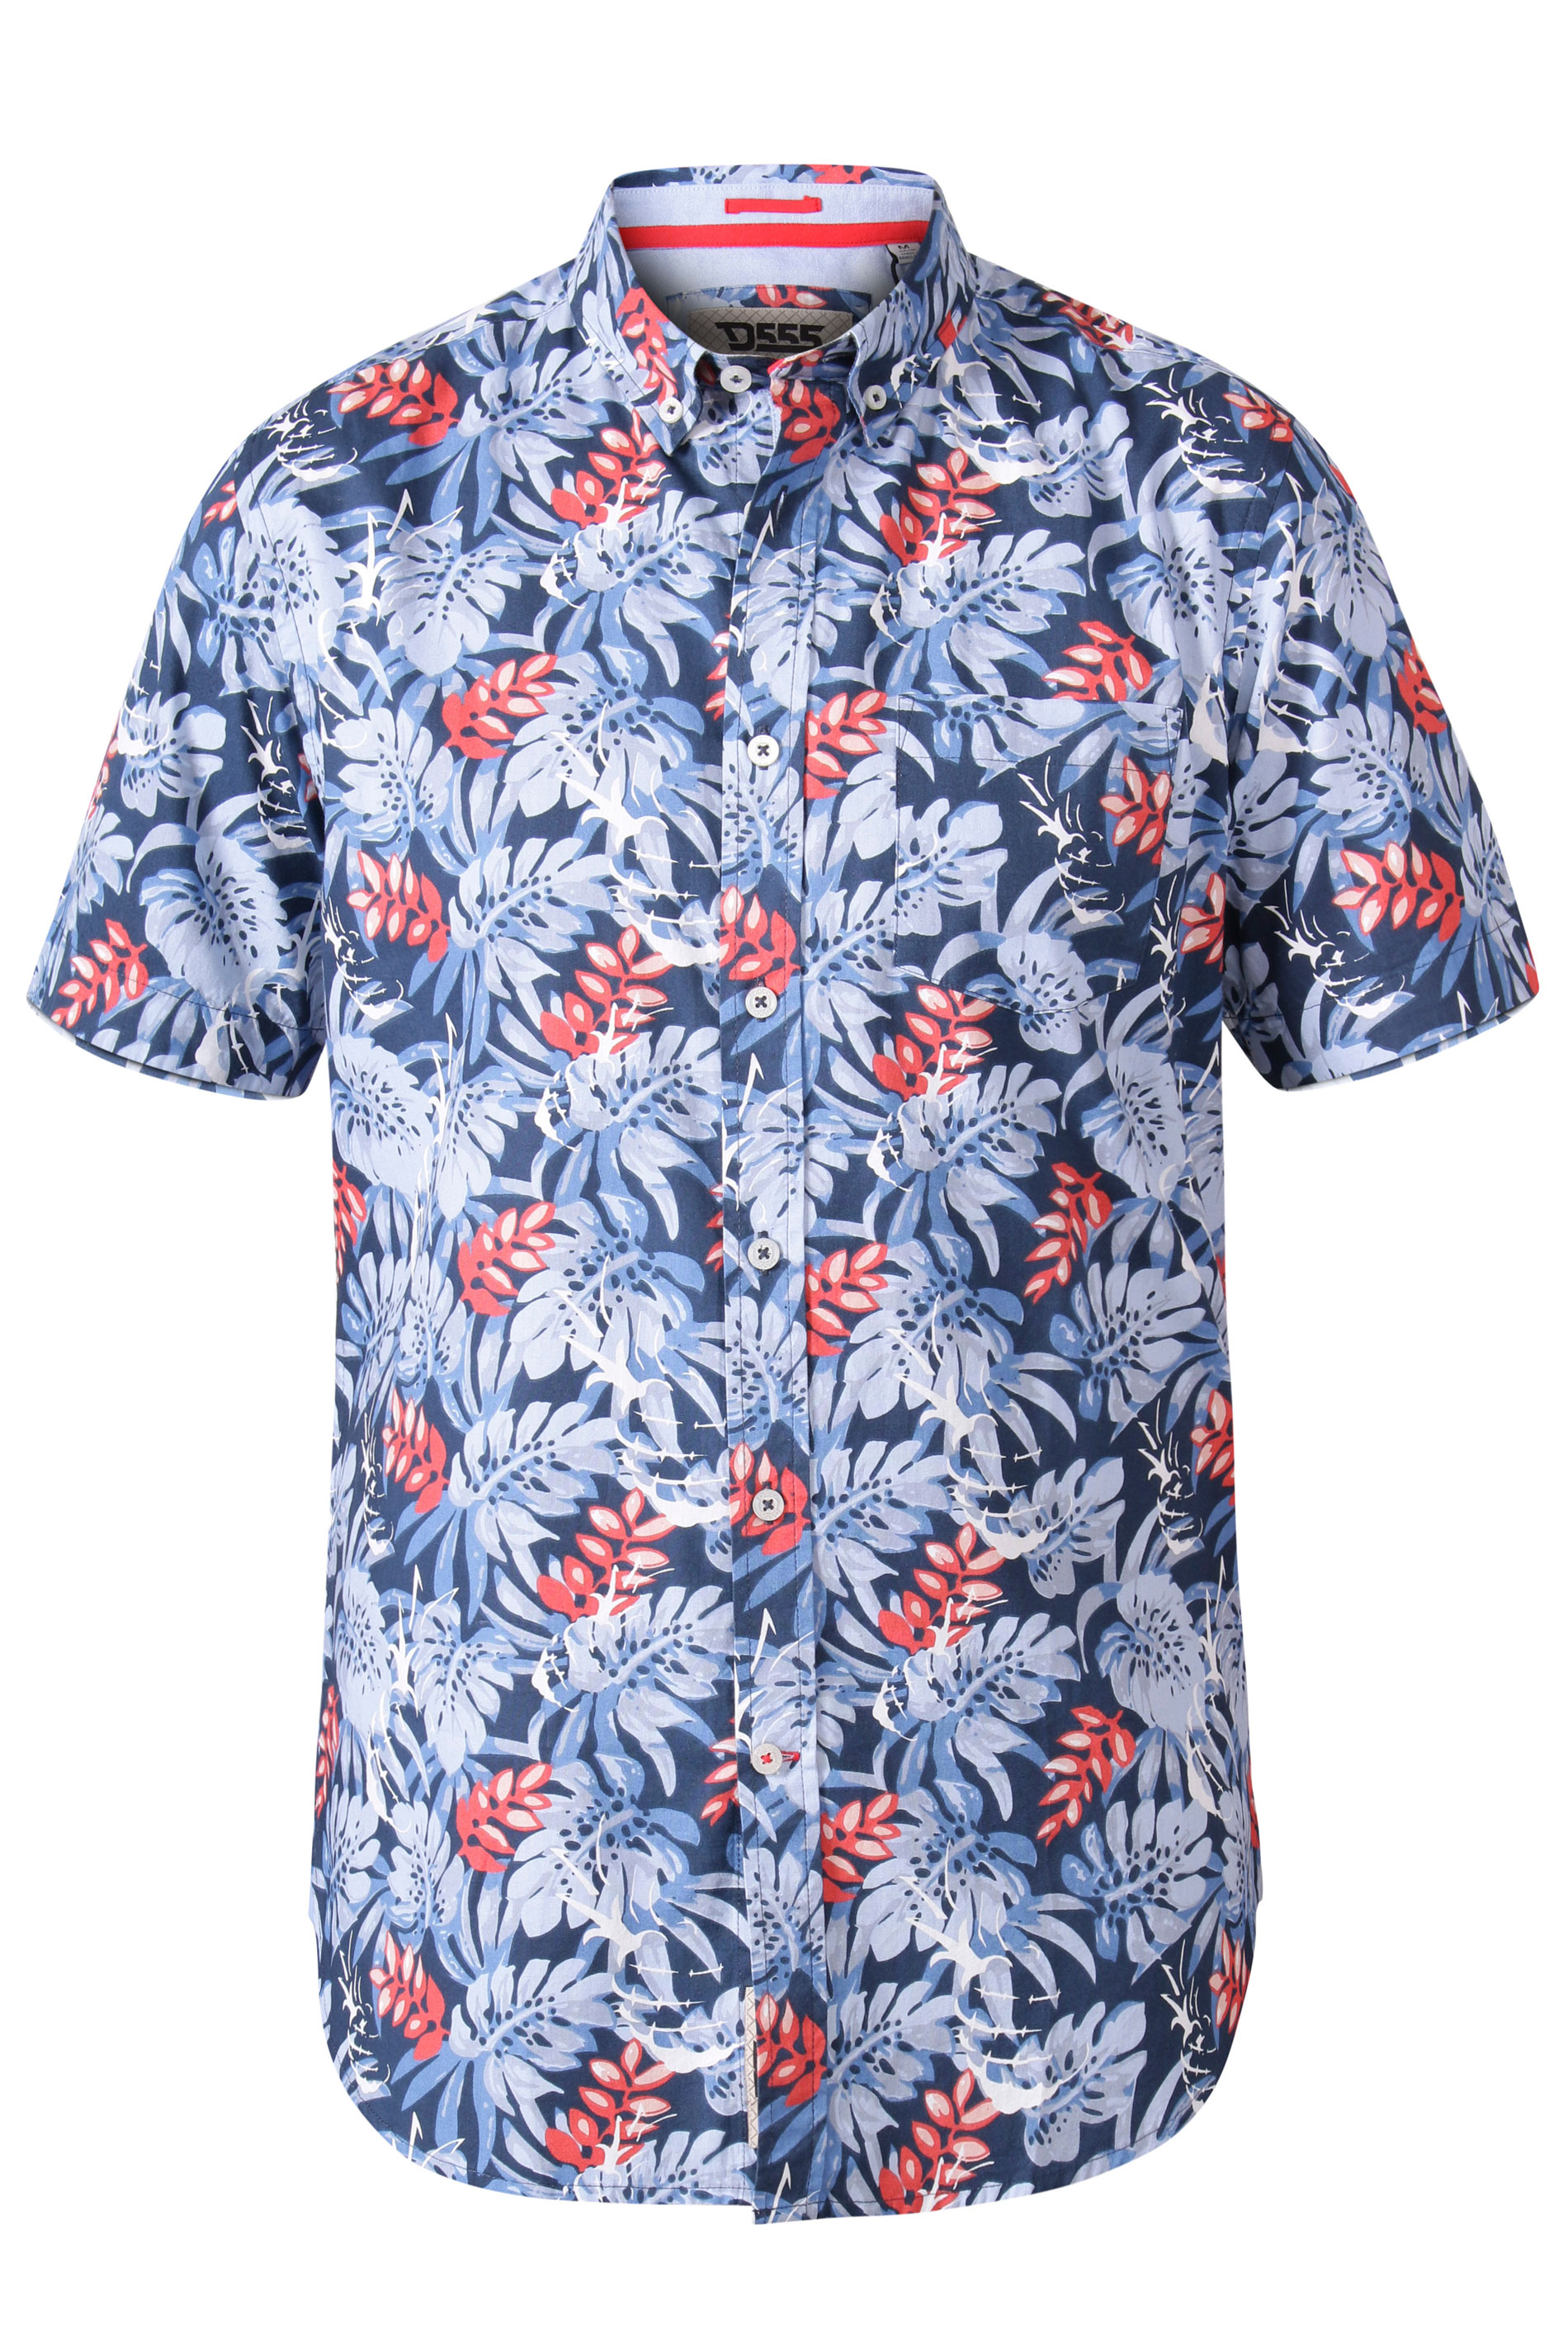 D555 Blue Hawaiian Print Shirt